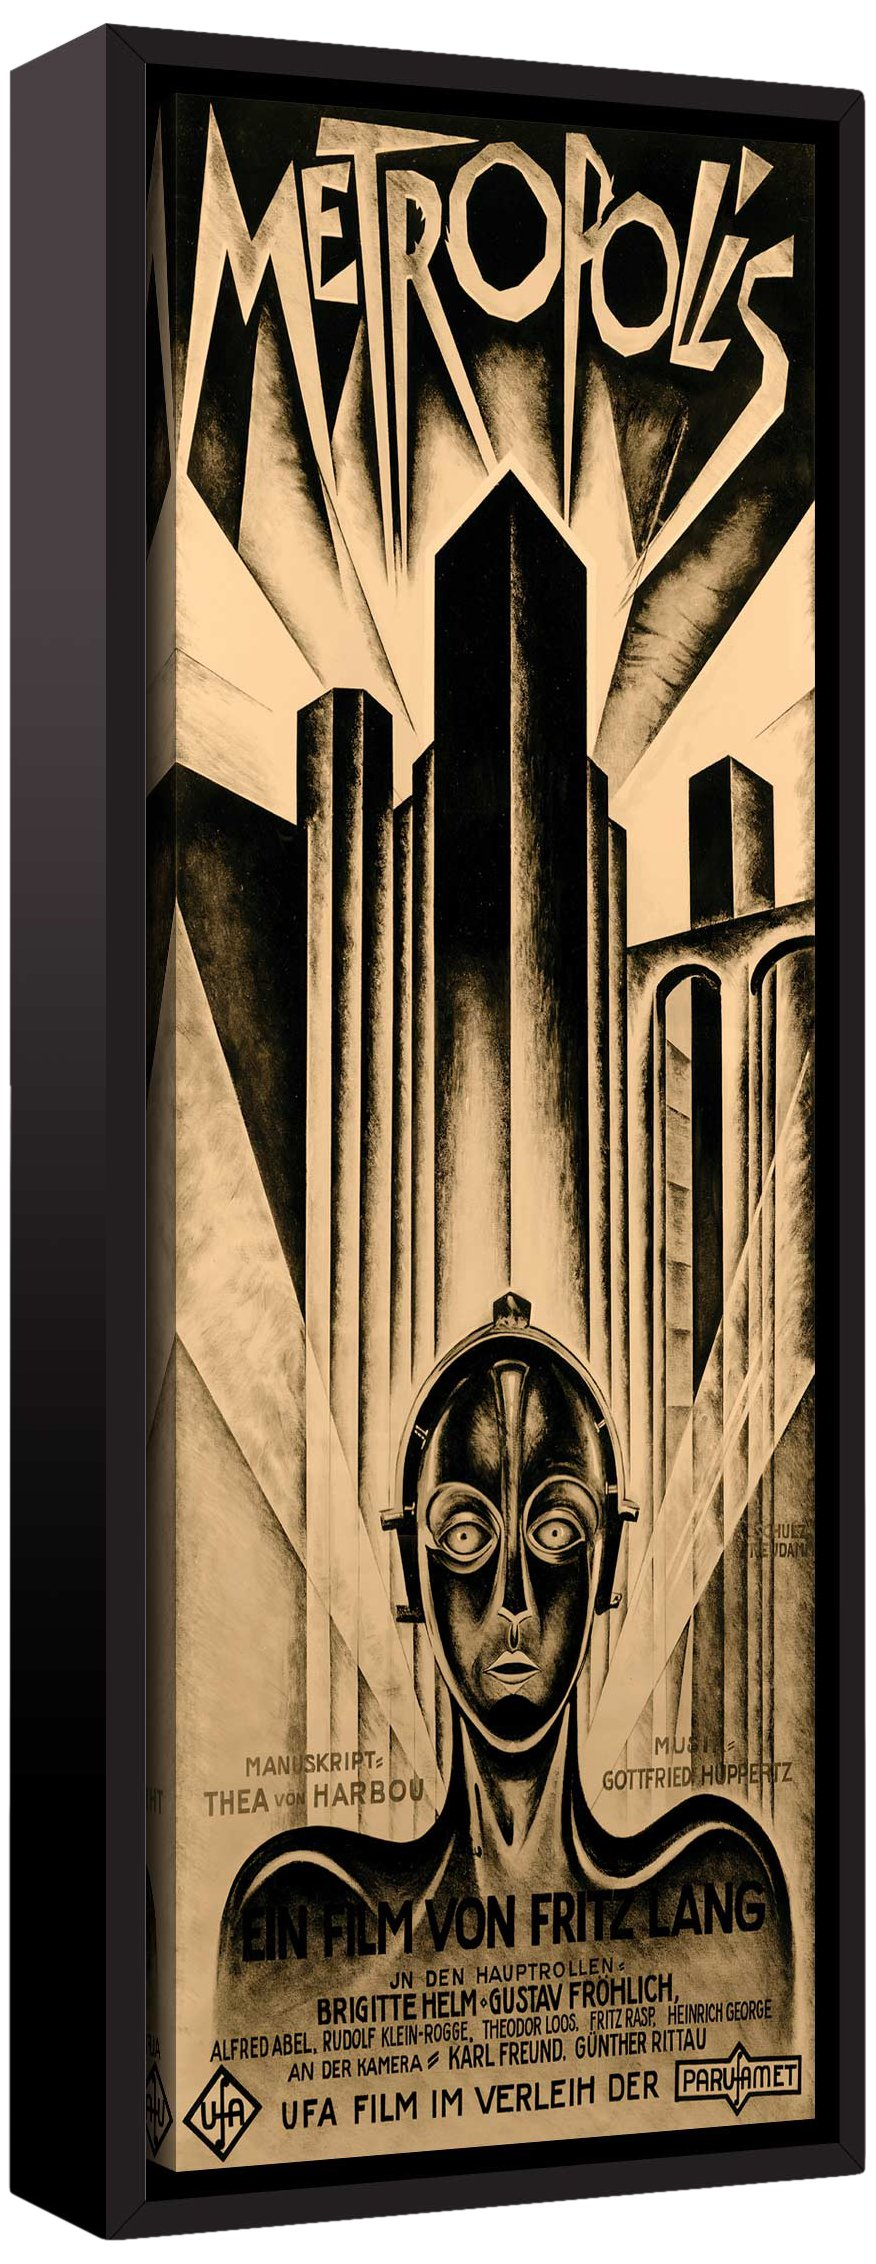 ArtWall Vintage Movies 'Metropolis' Floater-Framed Gallery Wrapped, 08'' x 12'', Canvas Artwork